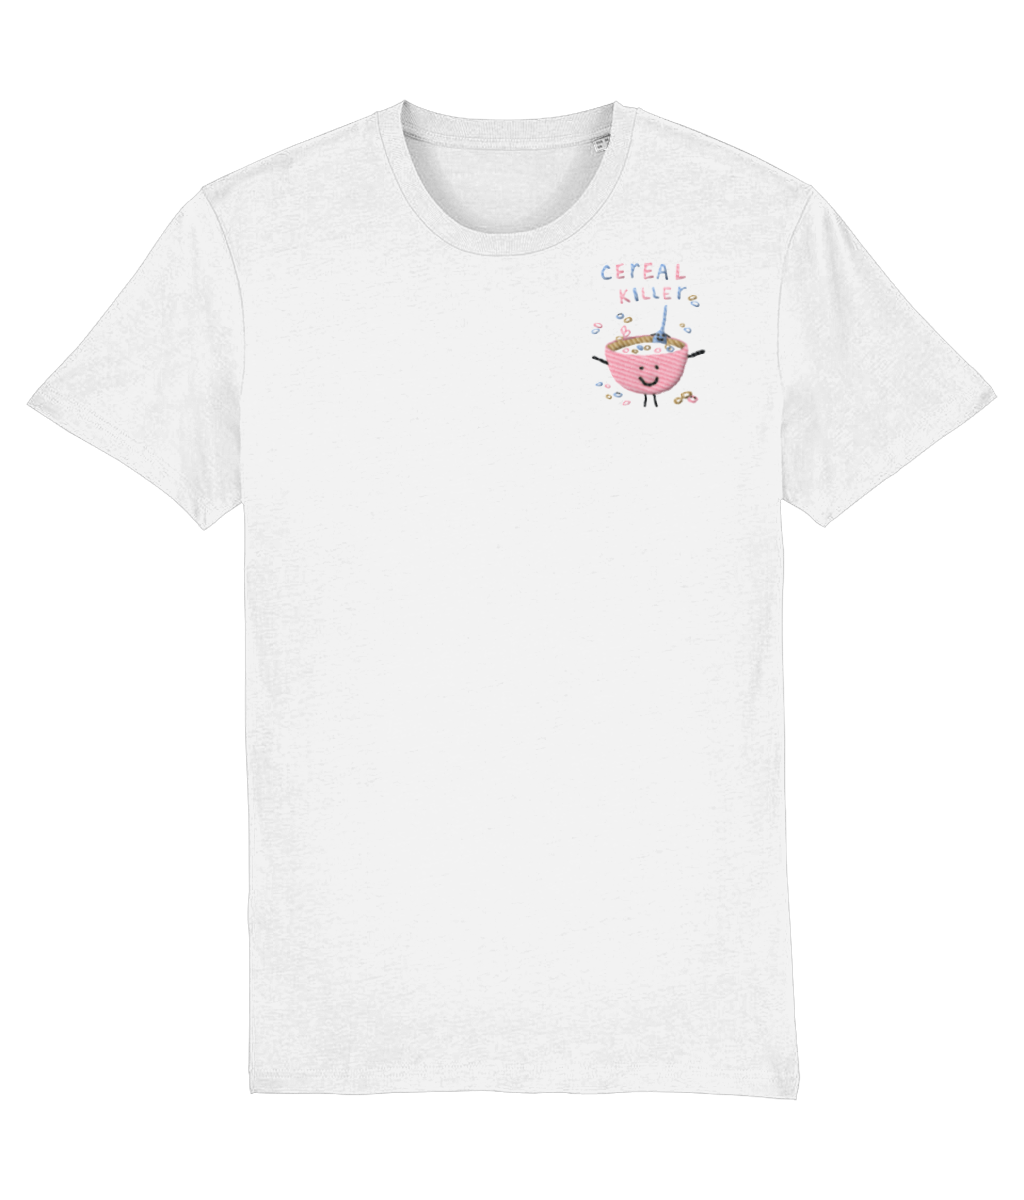 Embroidered Cereal T-shirt